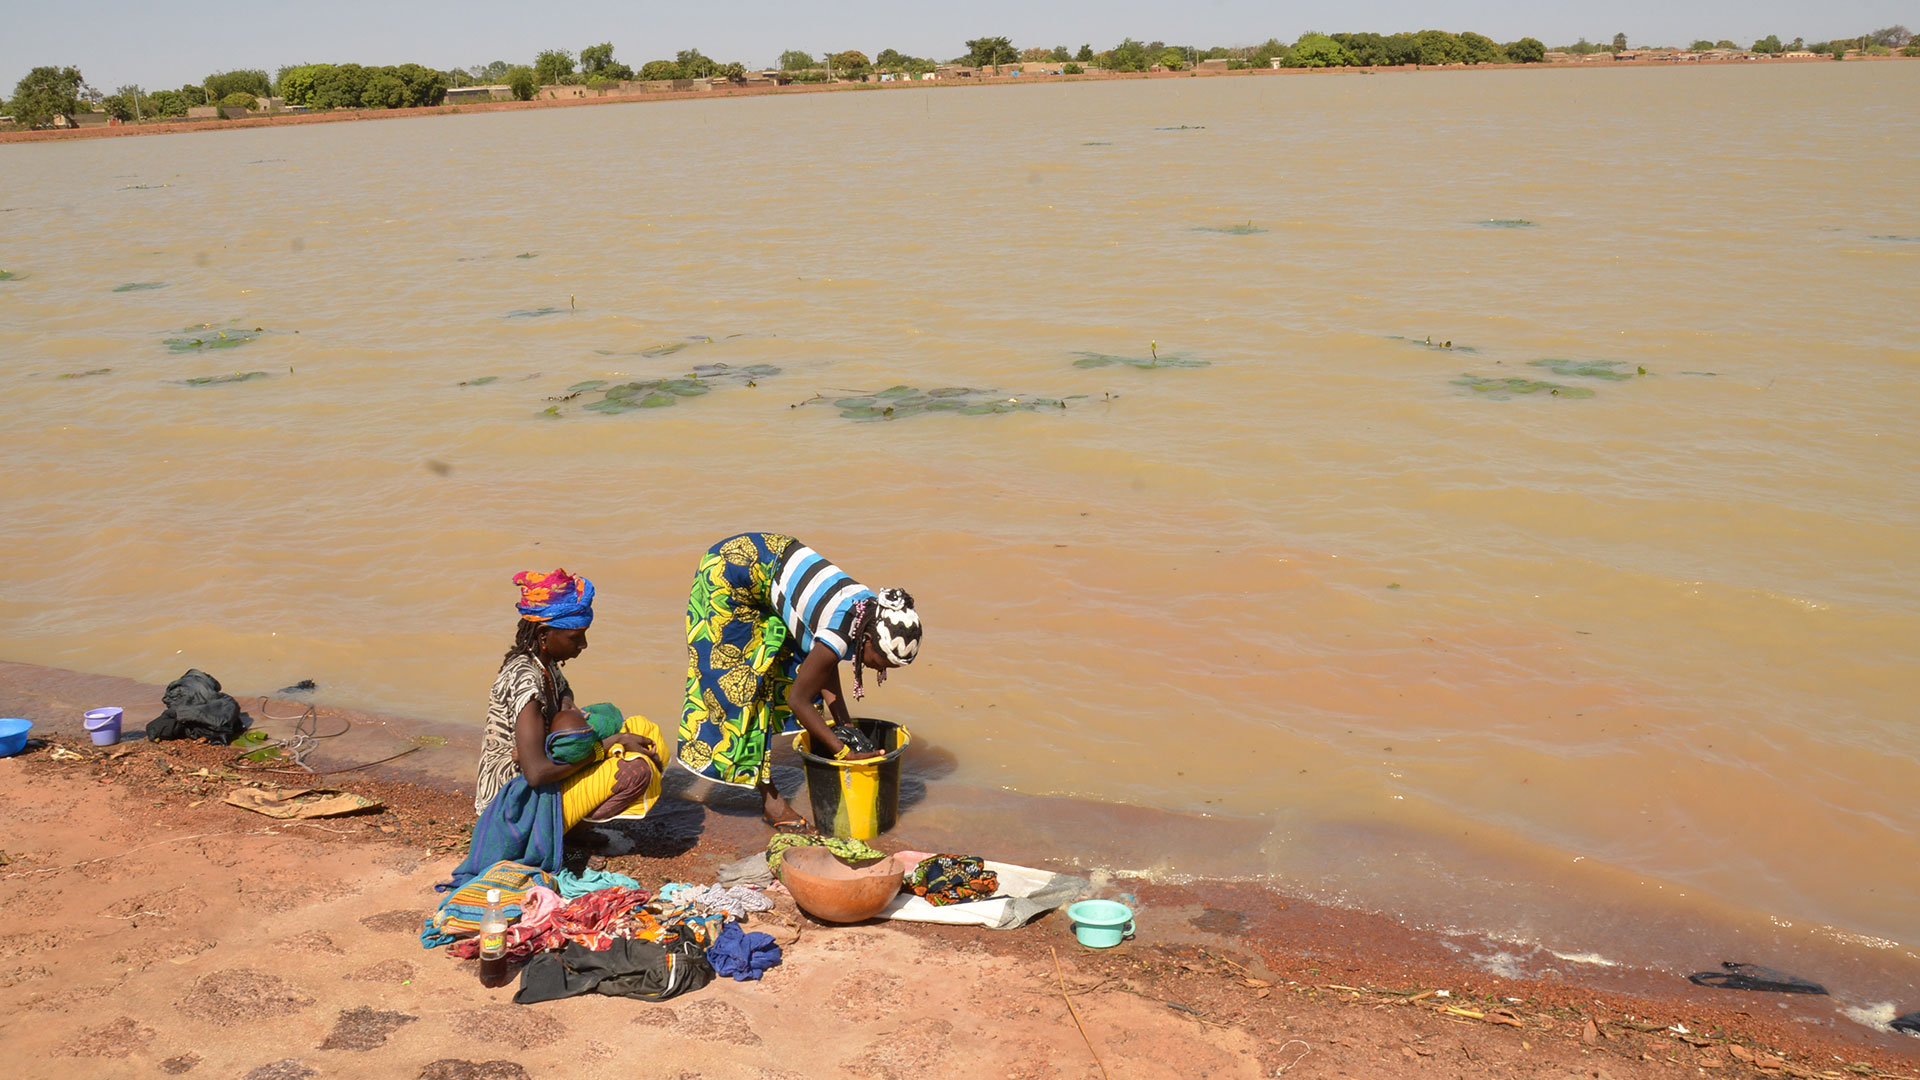 Women wash clothes in a polluted lake in Burkina Faso